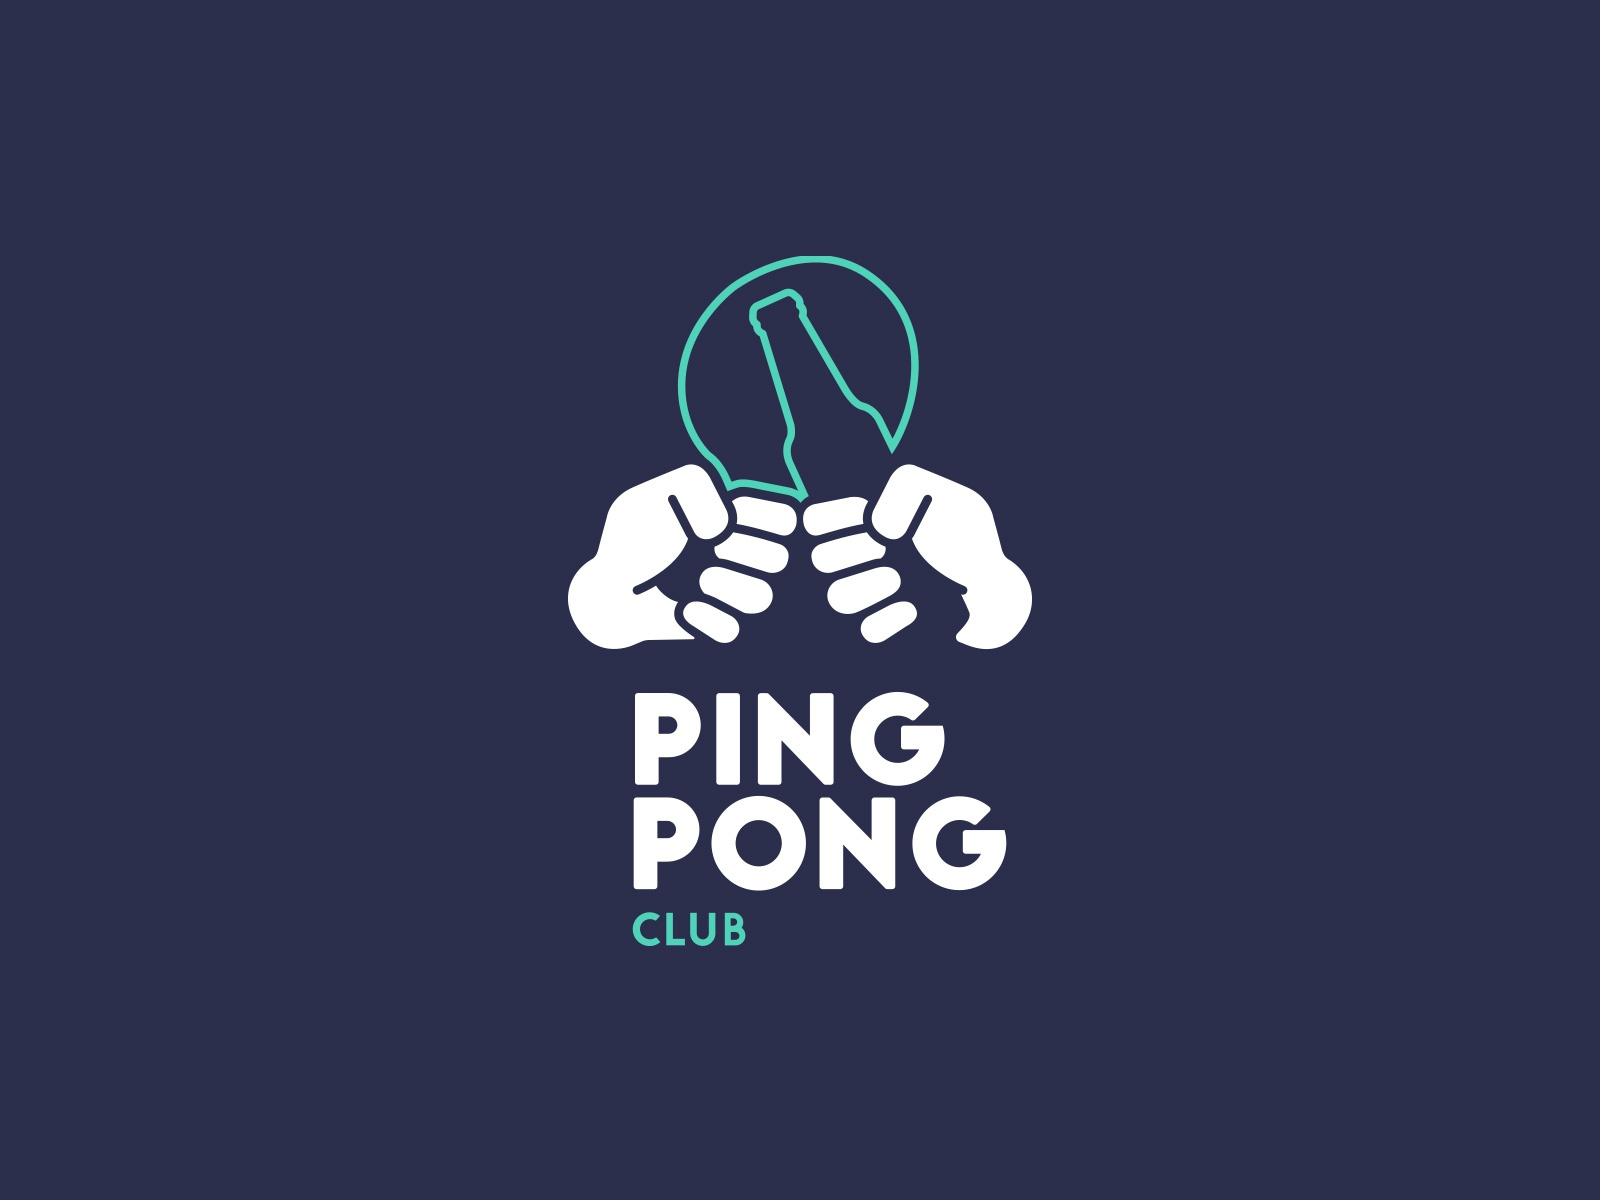 Ping Pong Club Concept